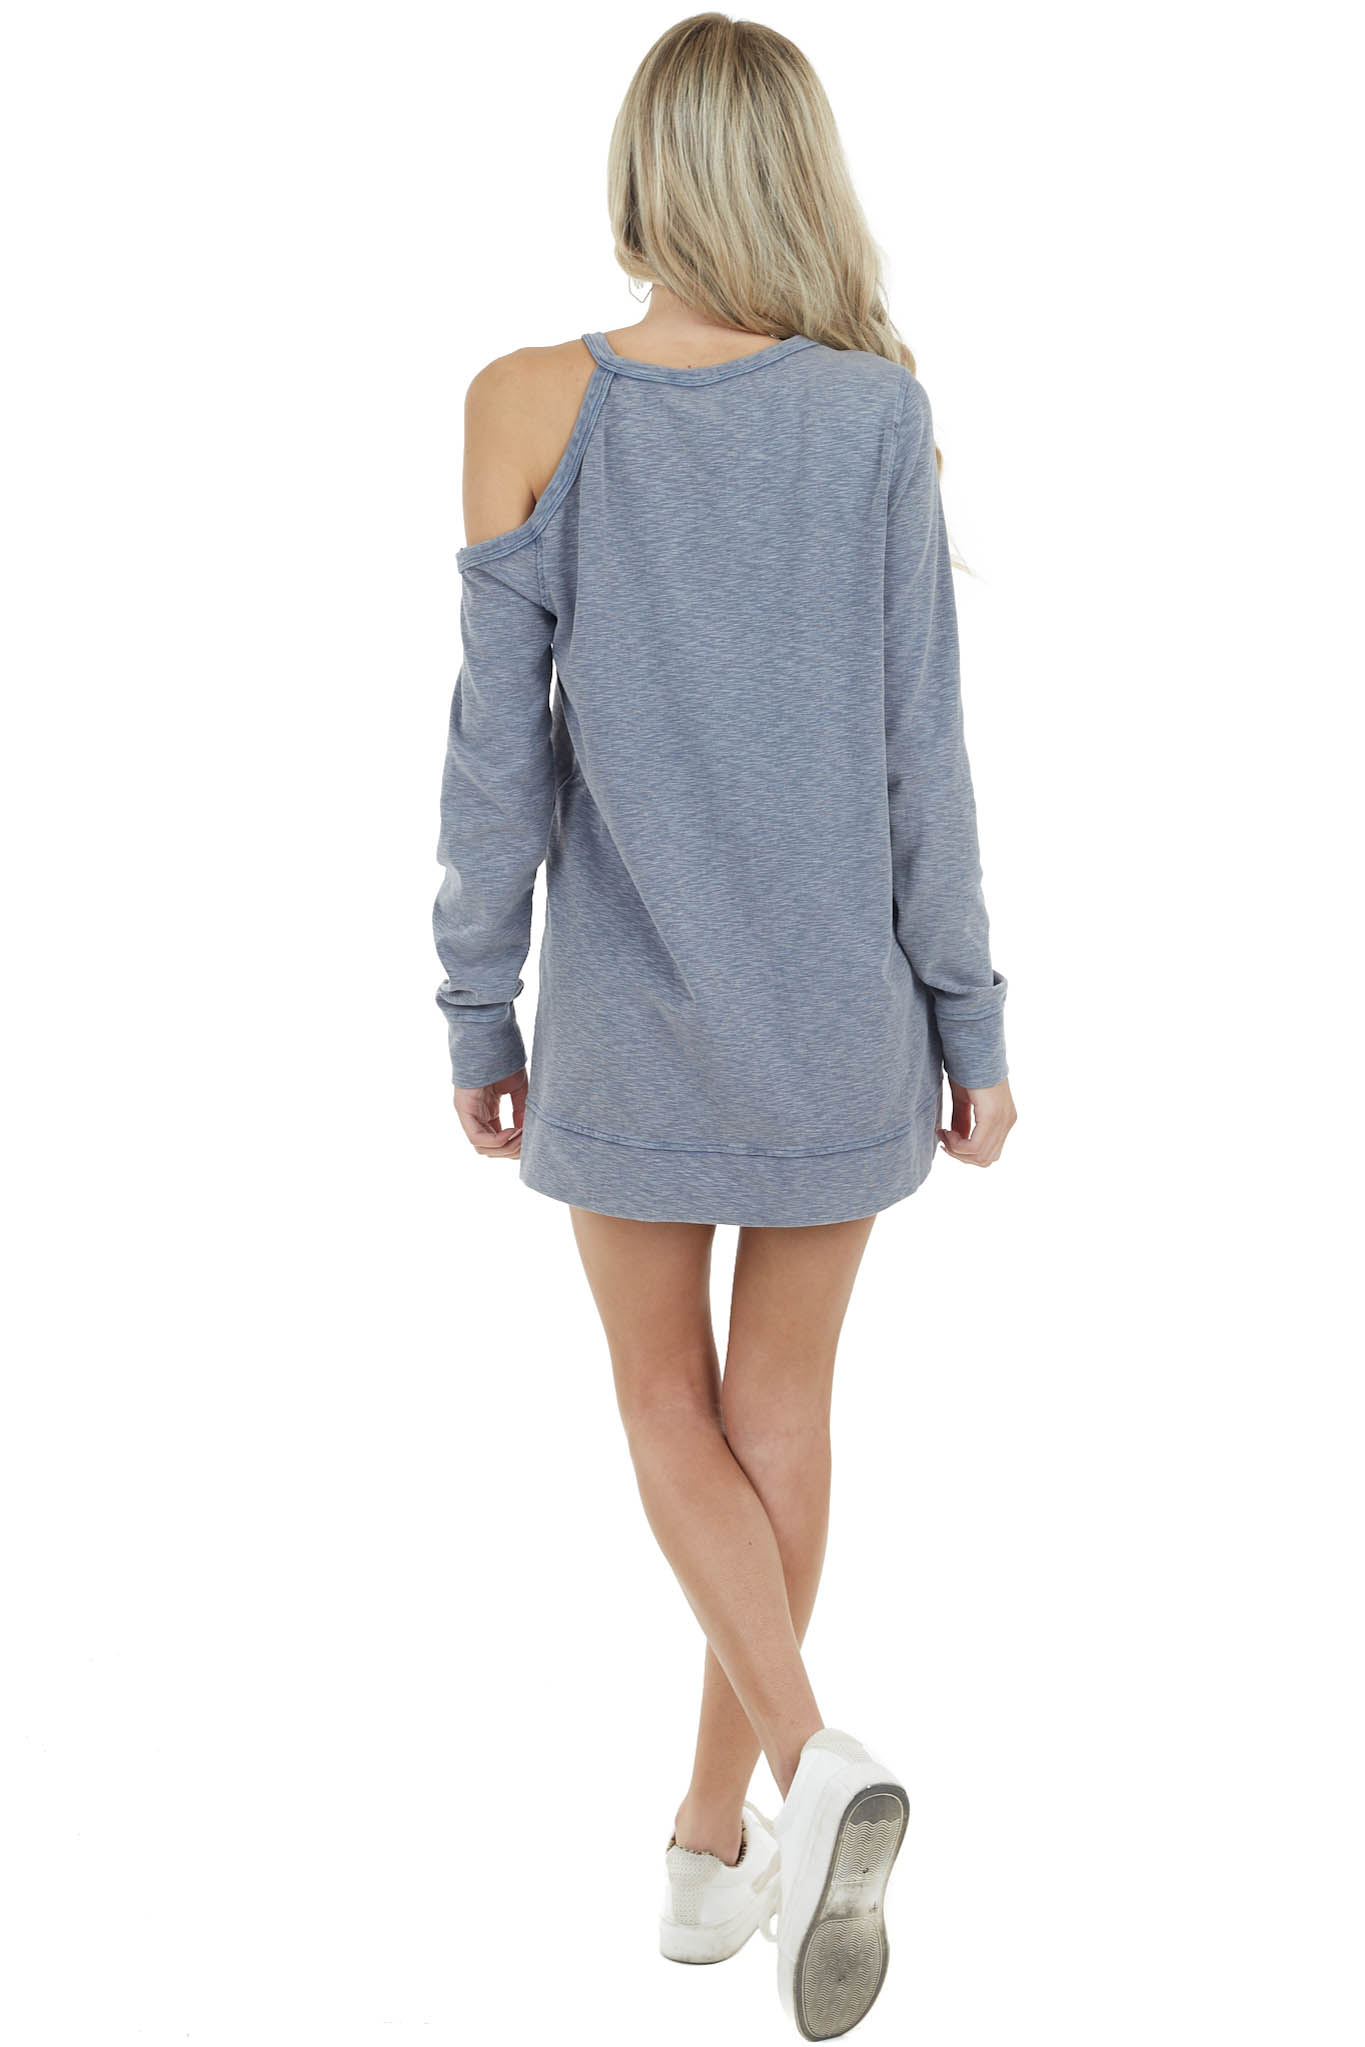 Dusty Blue Two Toned Long Sleeve Top with Cold Shoulder